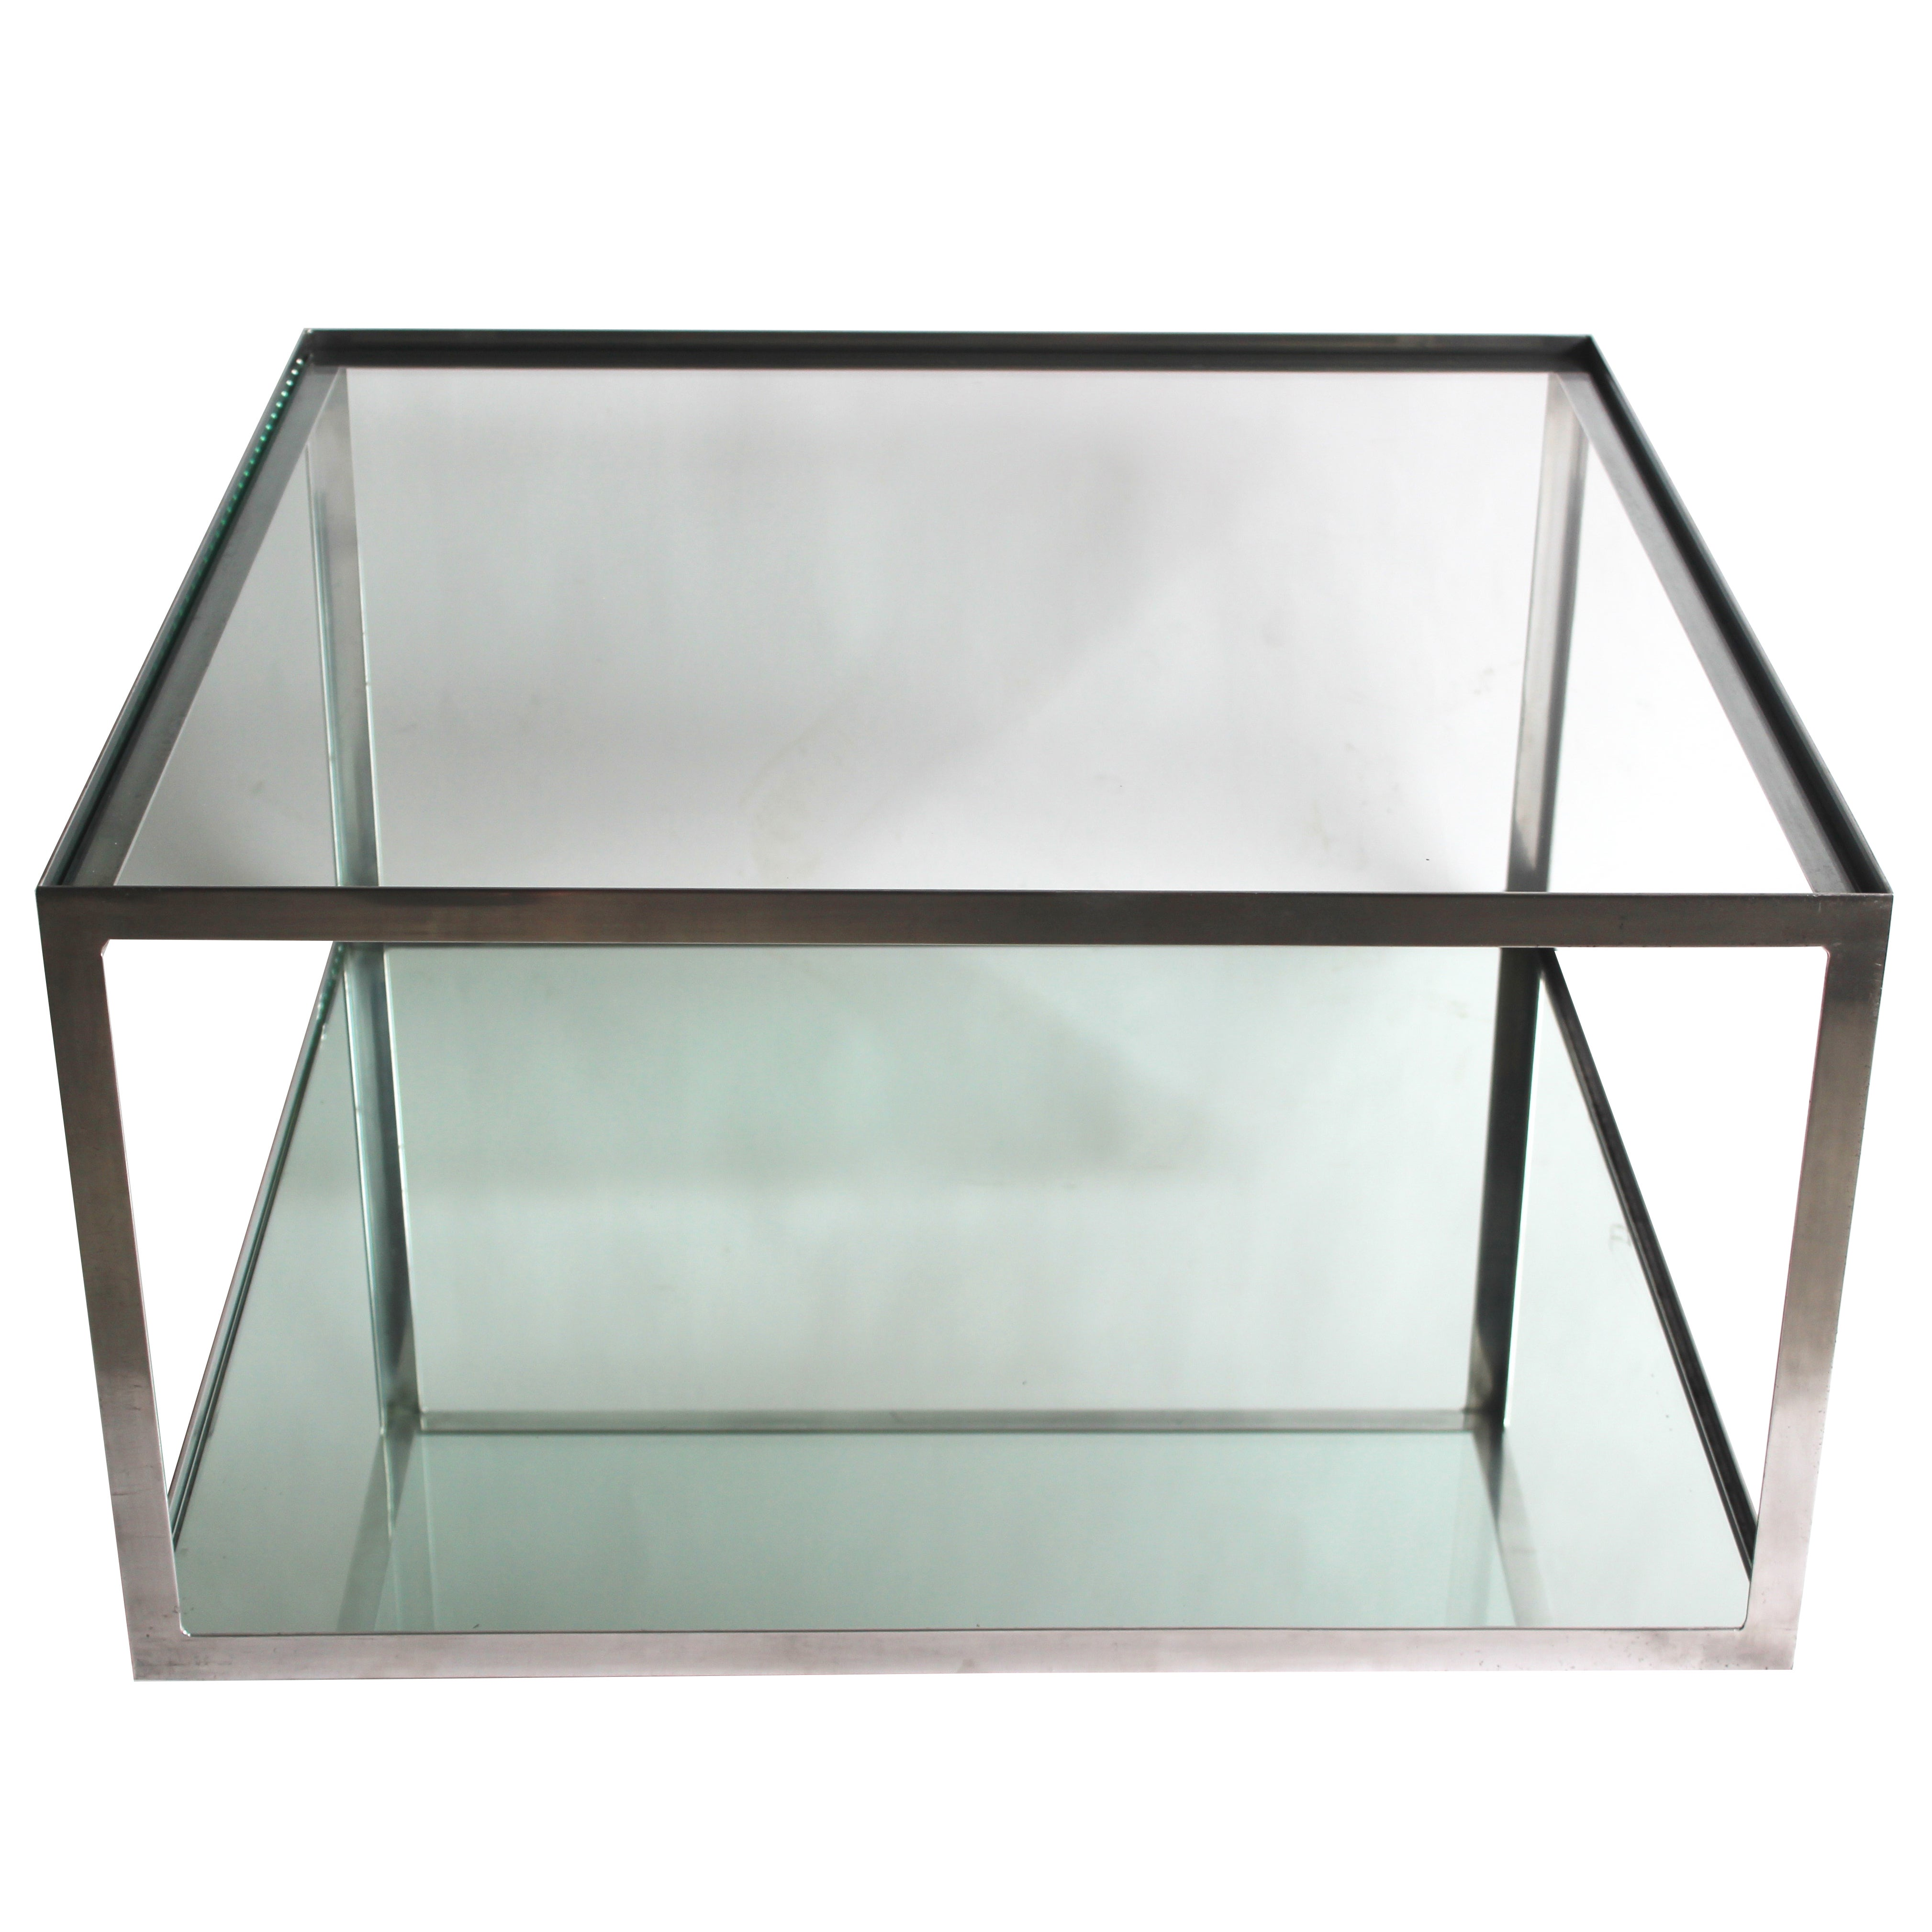 Two-tier Aluminum Coffee Table